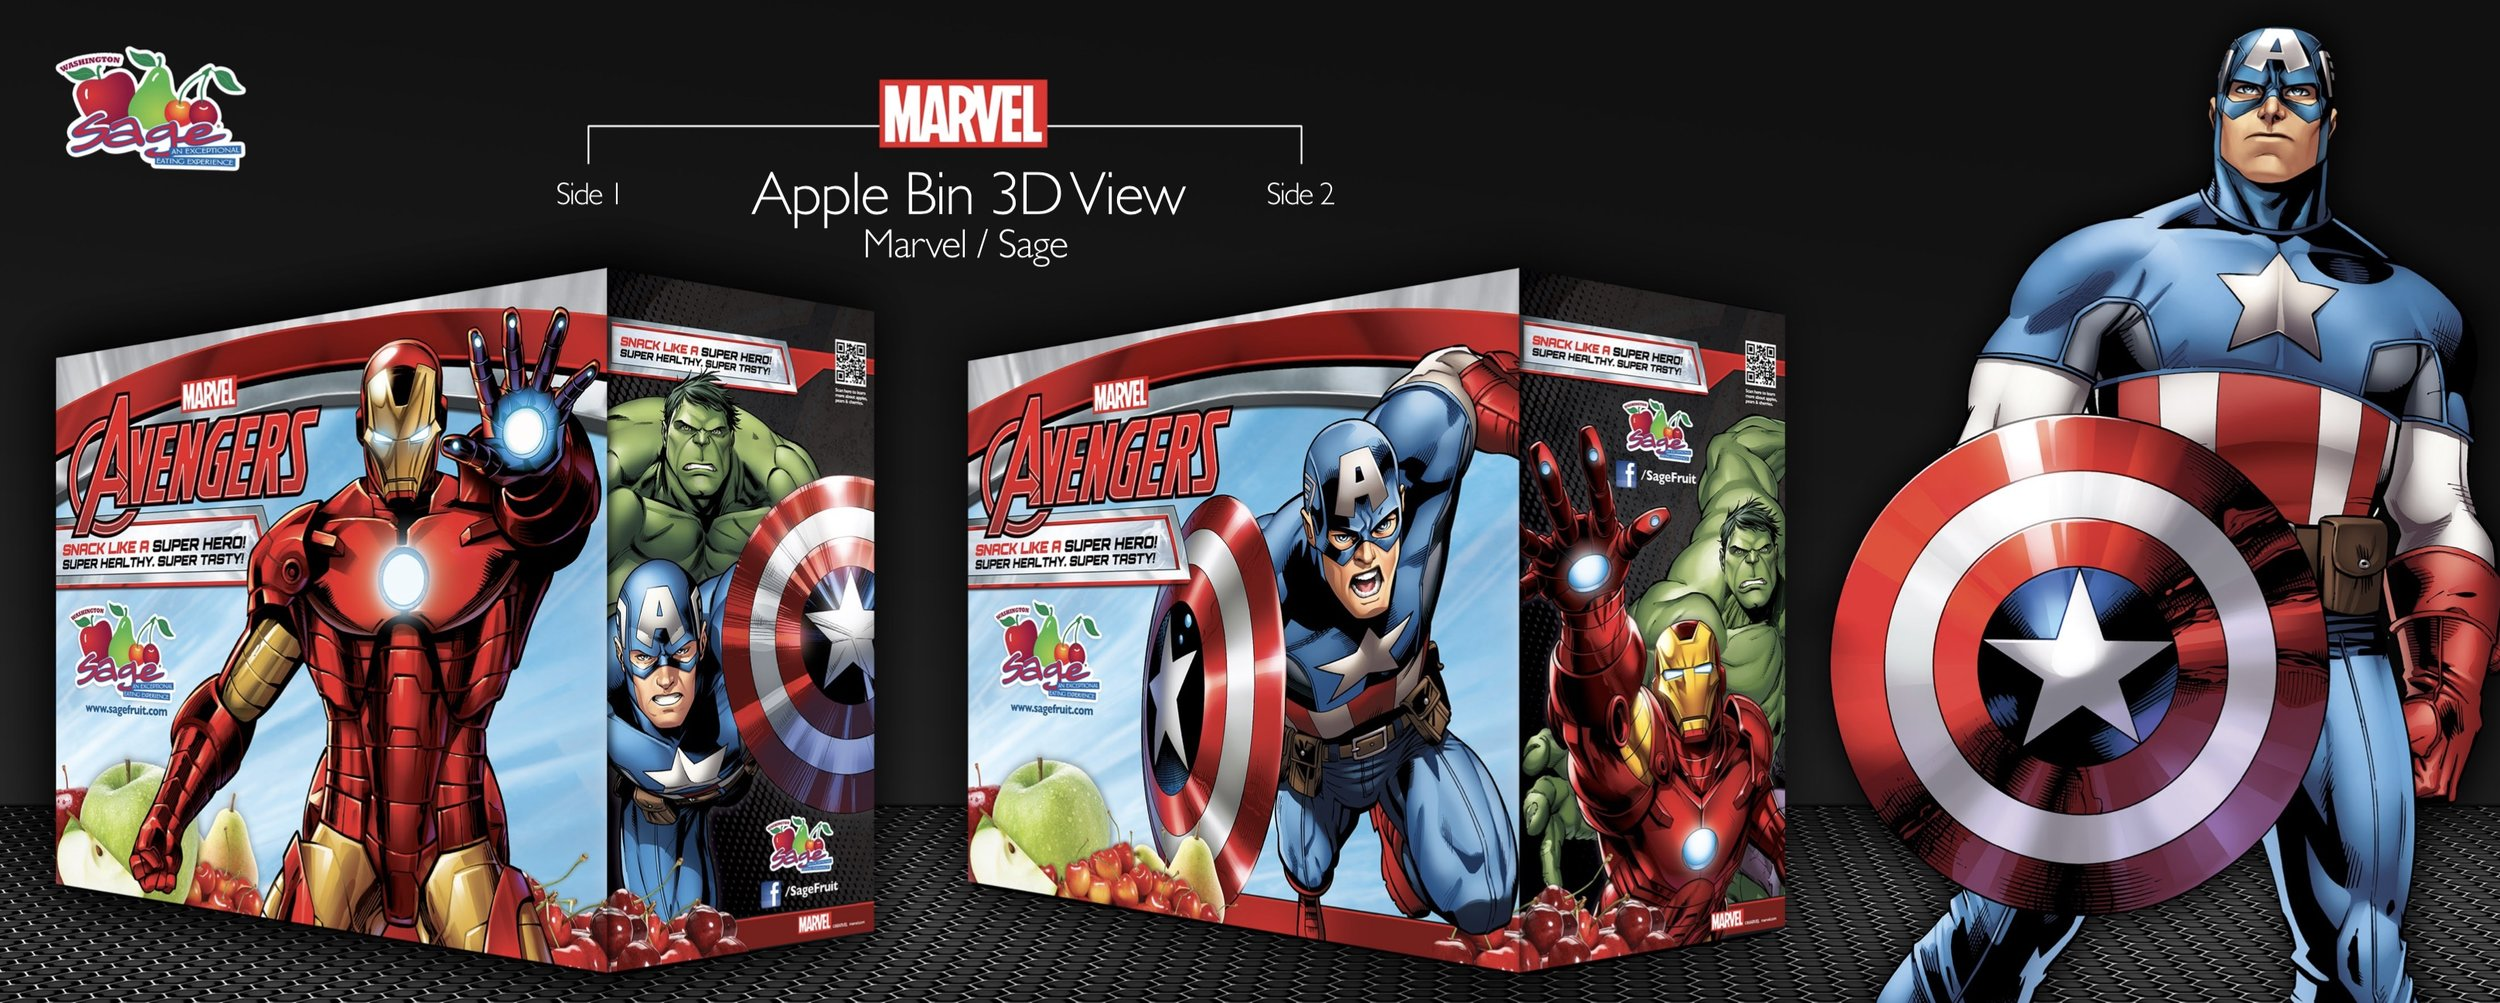 Point of sale apple bin designed for Sage Fruit Company in collaboration with Disney/Marvel.